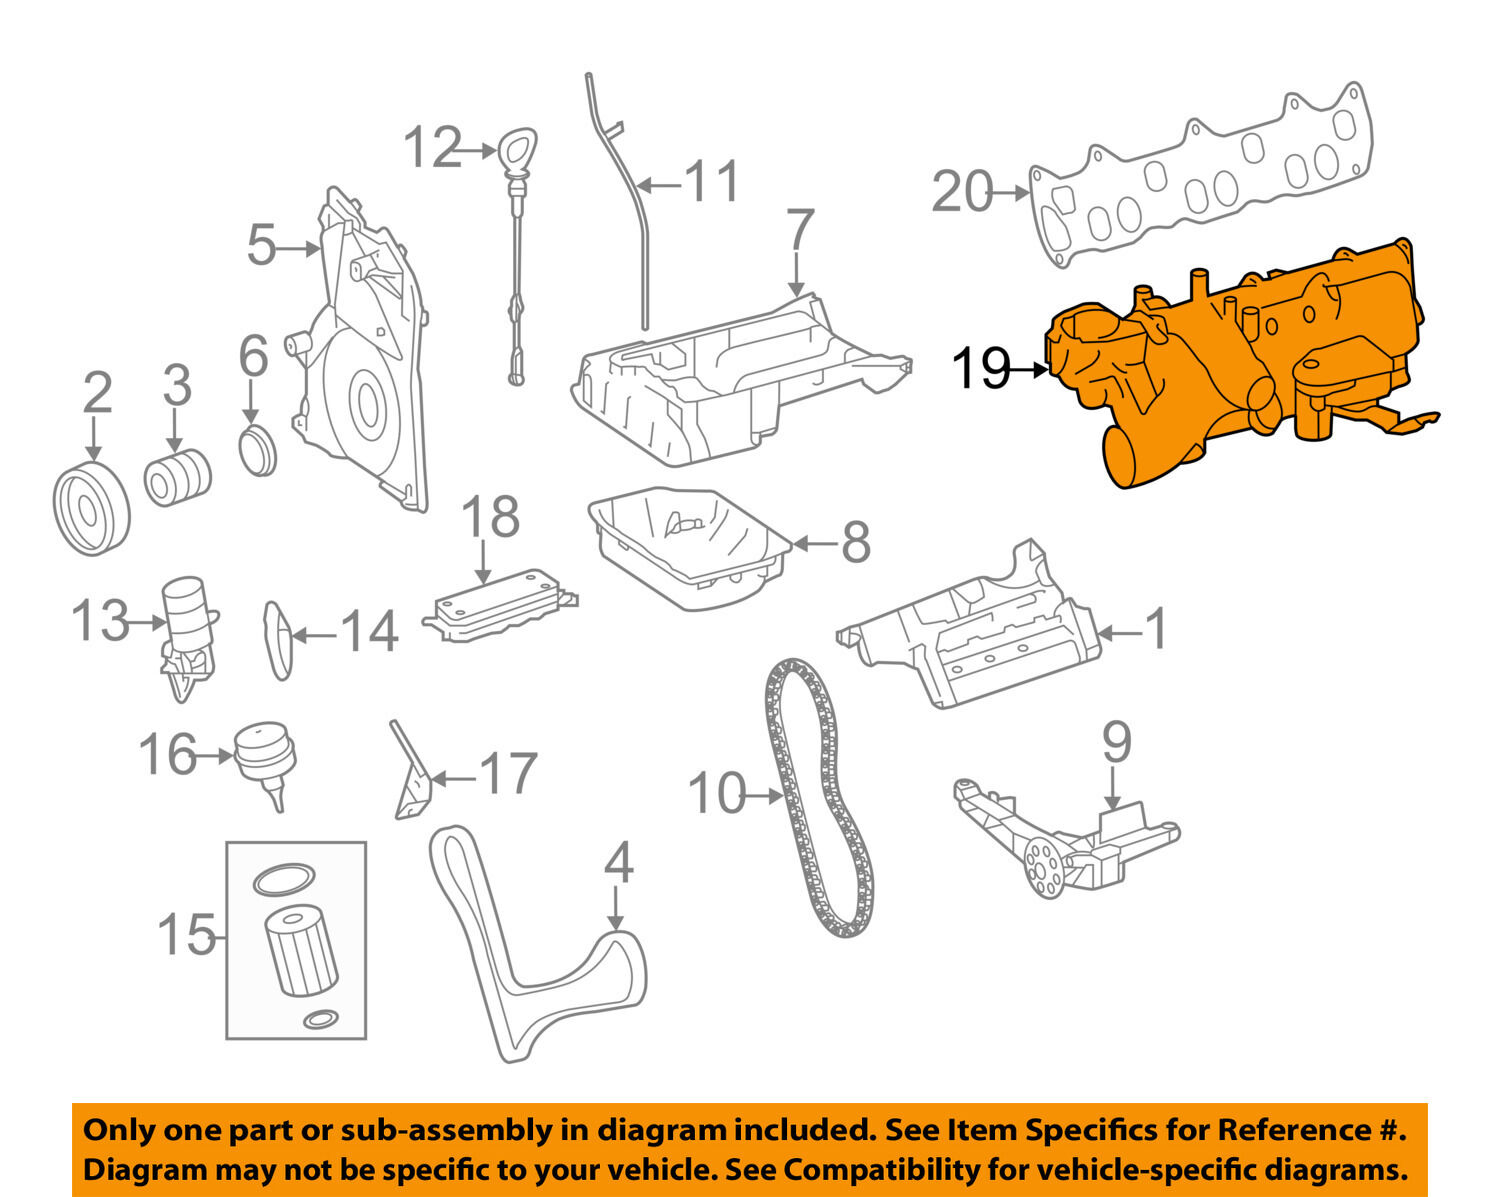 Mercedes Oem 10 16 Gl350 Intake Manifold 6420900637 47600 Picclick H22a4 Wiring Harness Diagram 1 Of 2only Available